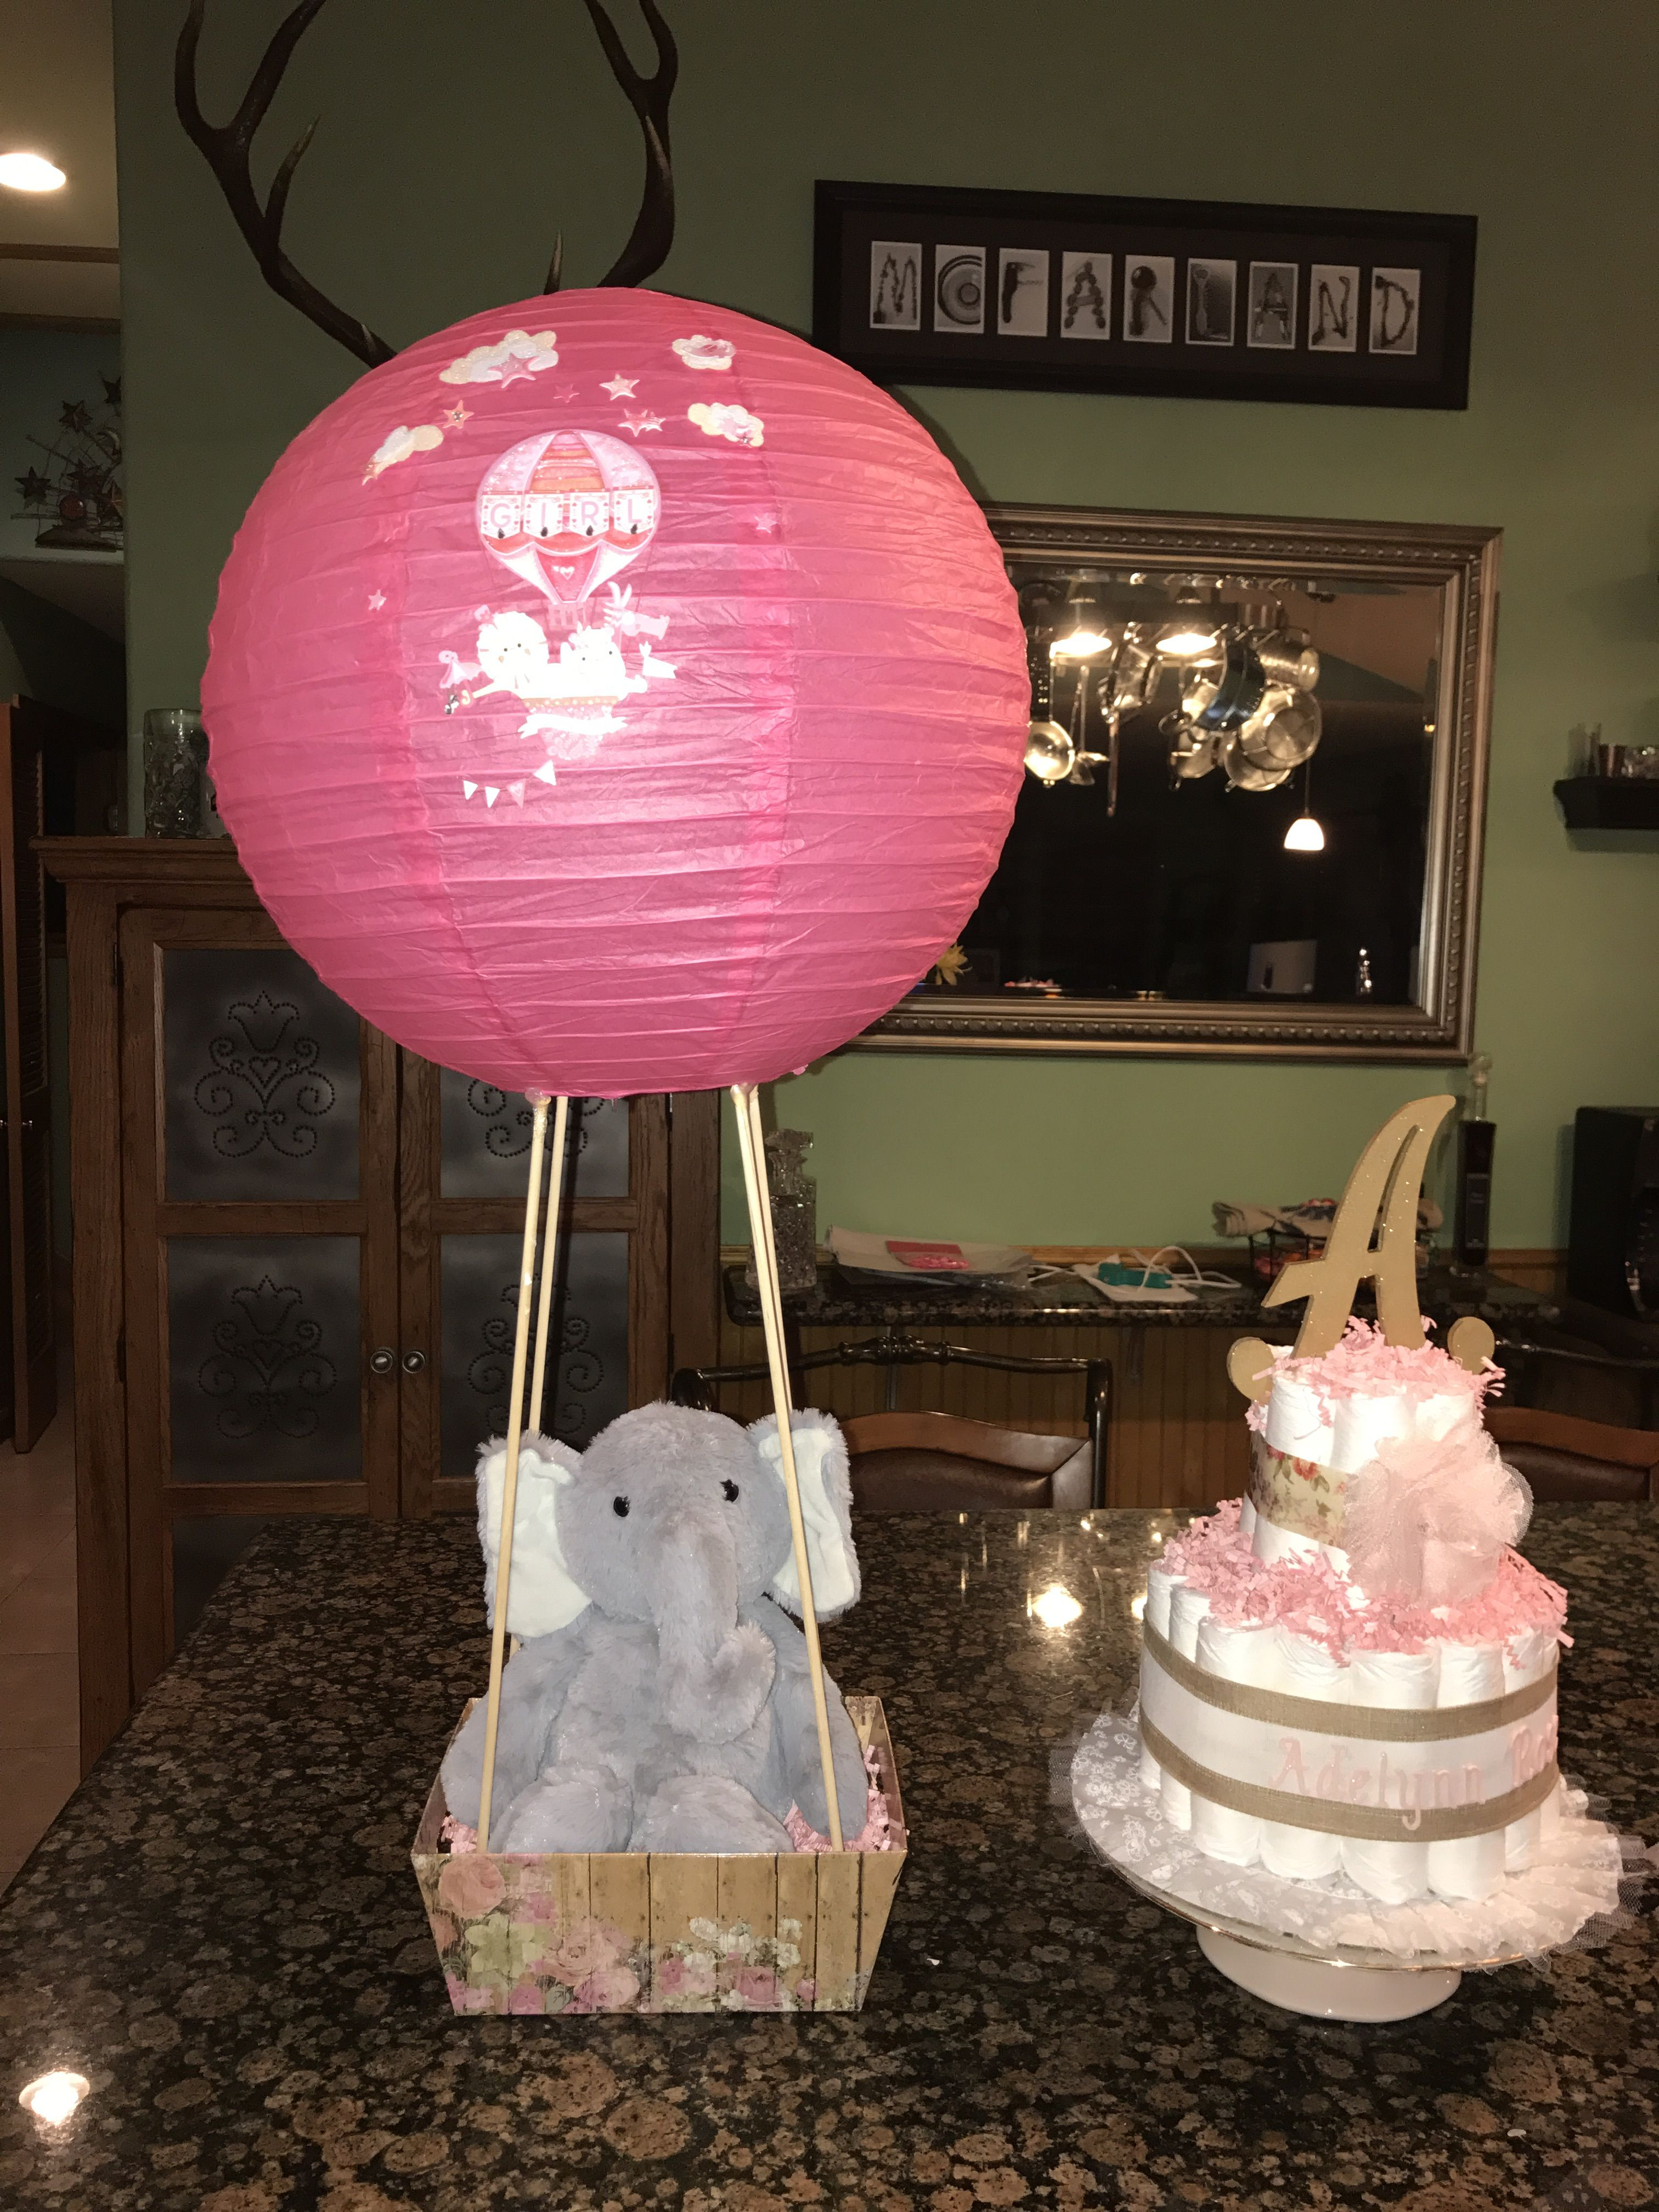 Pin By Diana Mcfarland On Baby Shower - Pinterest -